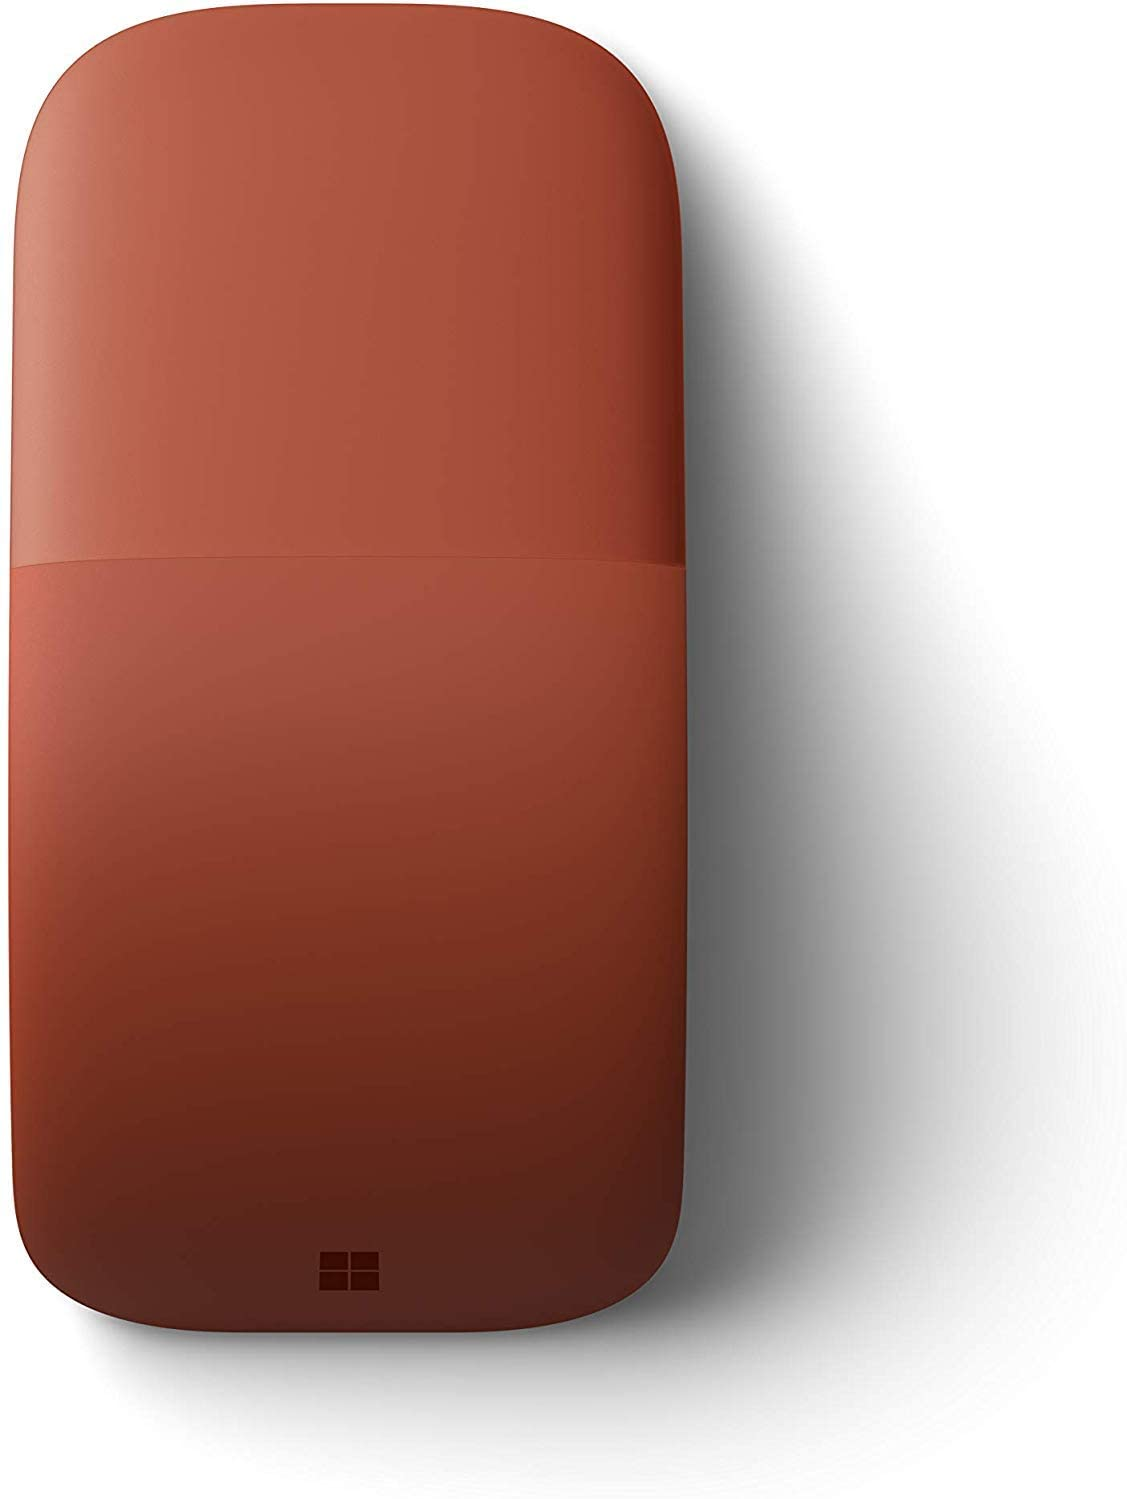 Microsoft CZV-00082 Light and Ready Surface Arc Mouse - Poppy Red Color